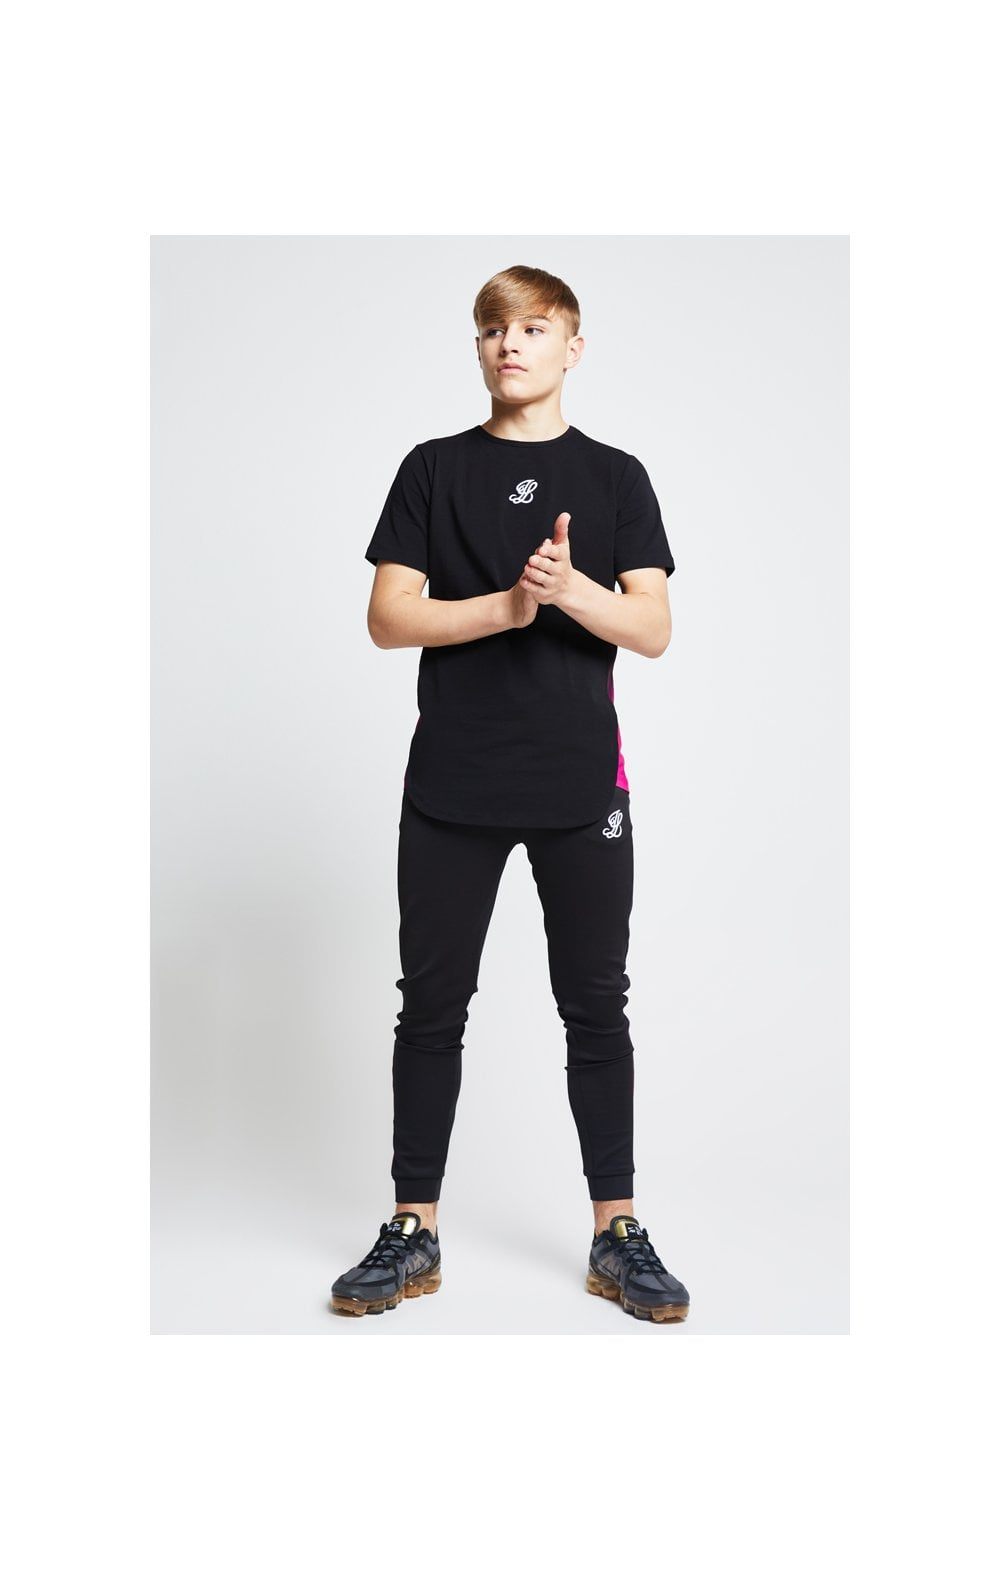 Illusive London Slide Tee - Black & Pink (3)